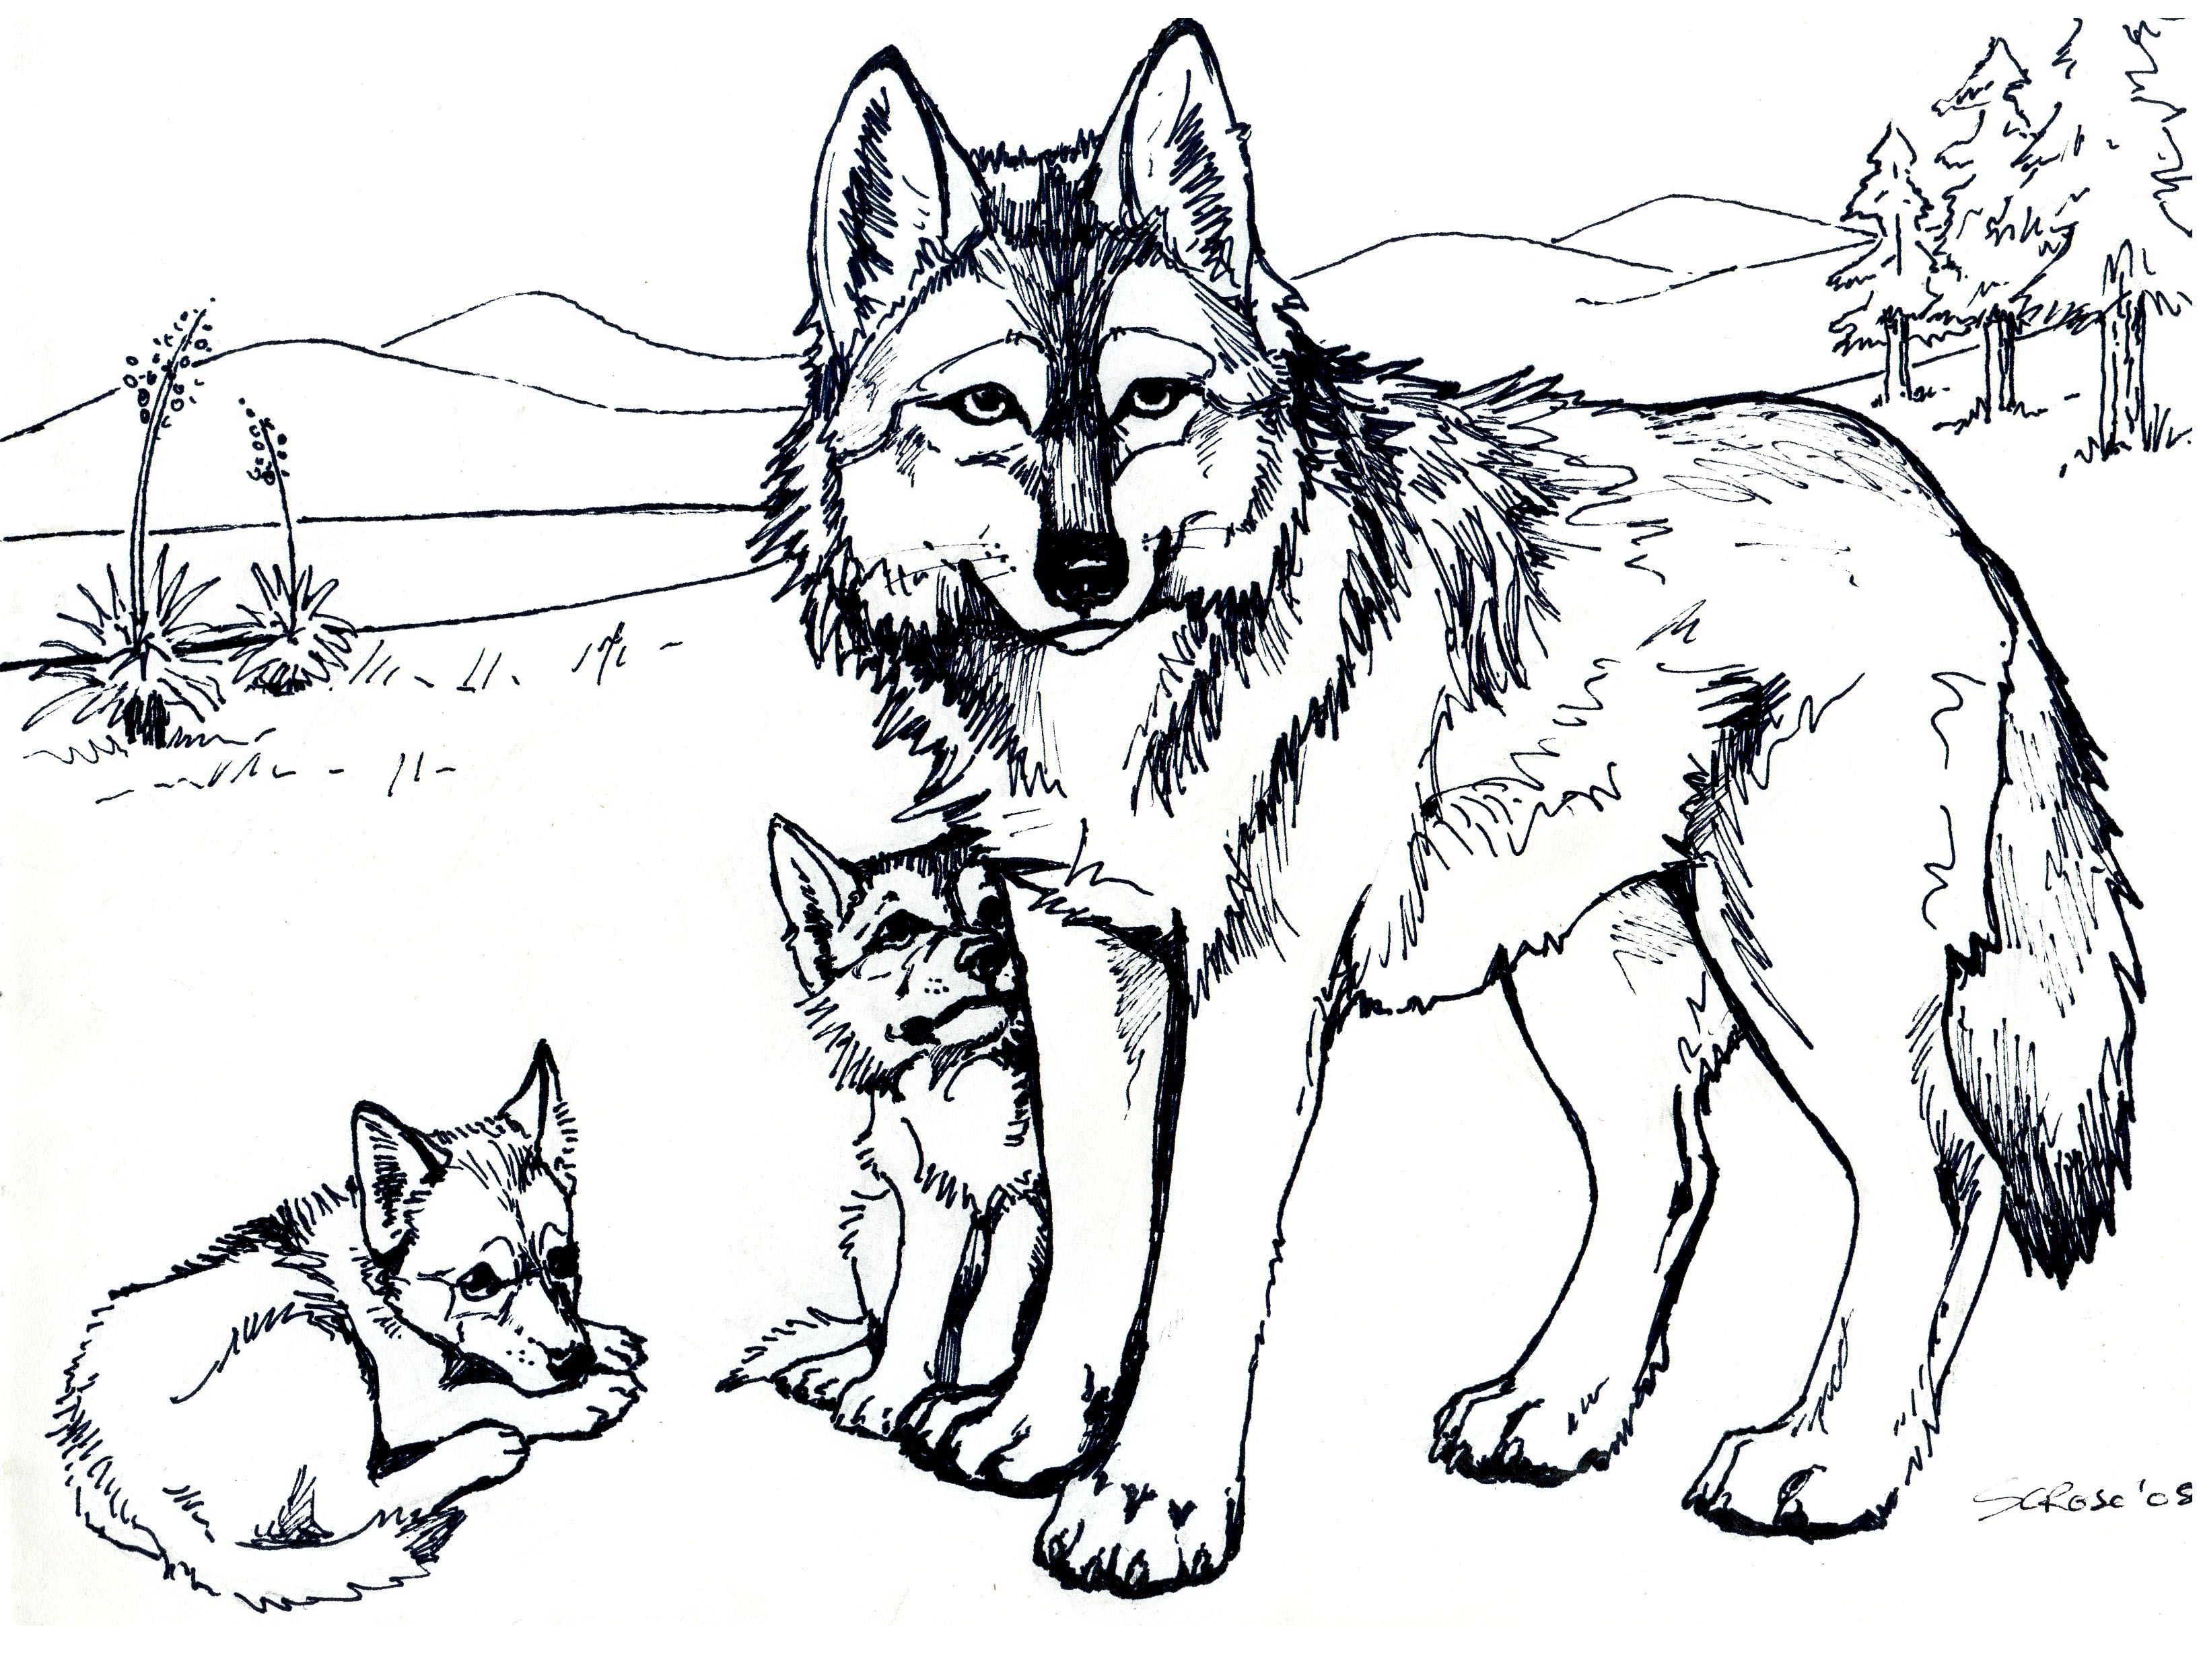 Free Printable Wolf Coloring Pages For Kids   Eden   Pinterest - Free Printable Realistic Animal Coloring Pages